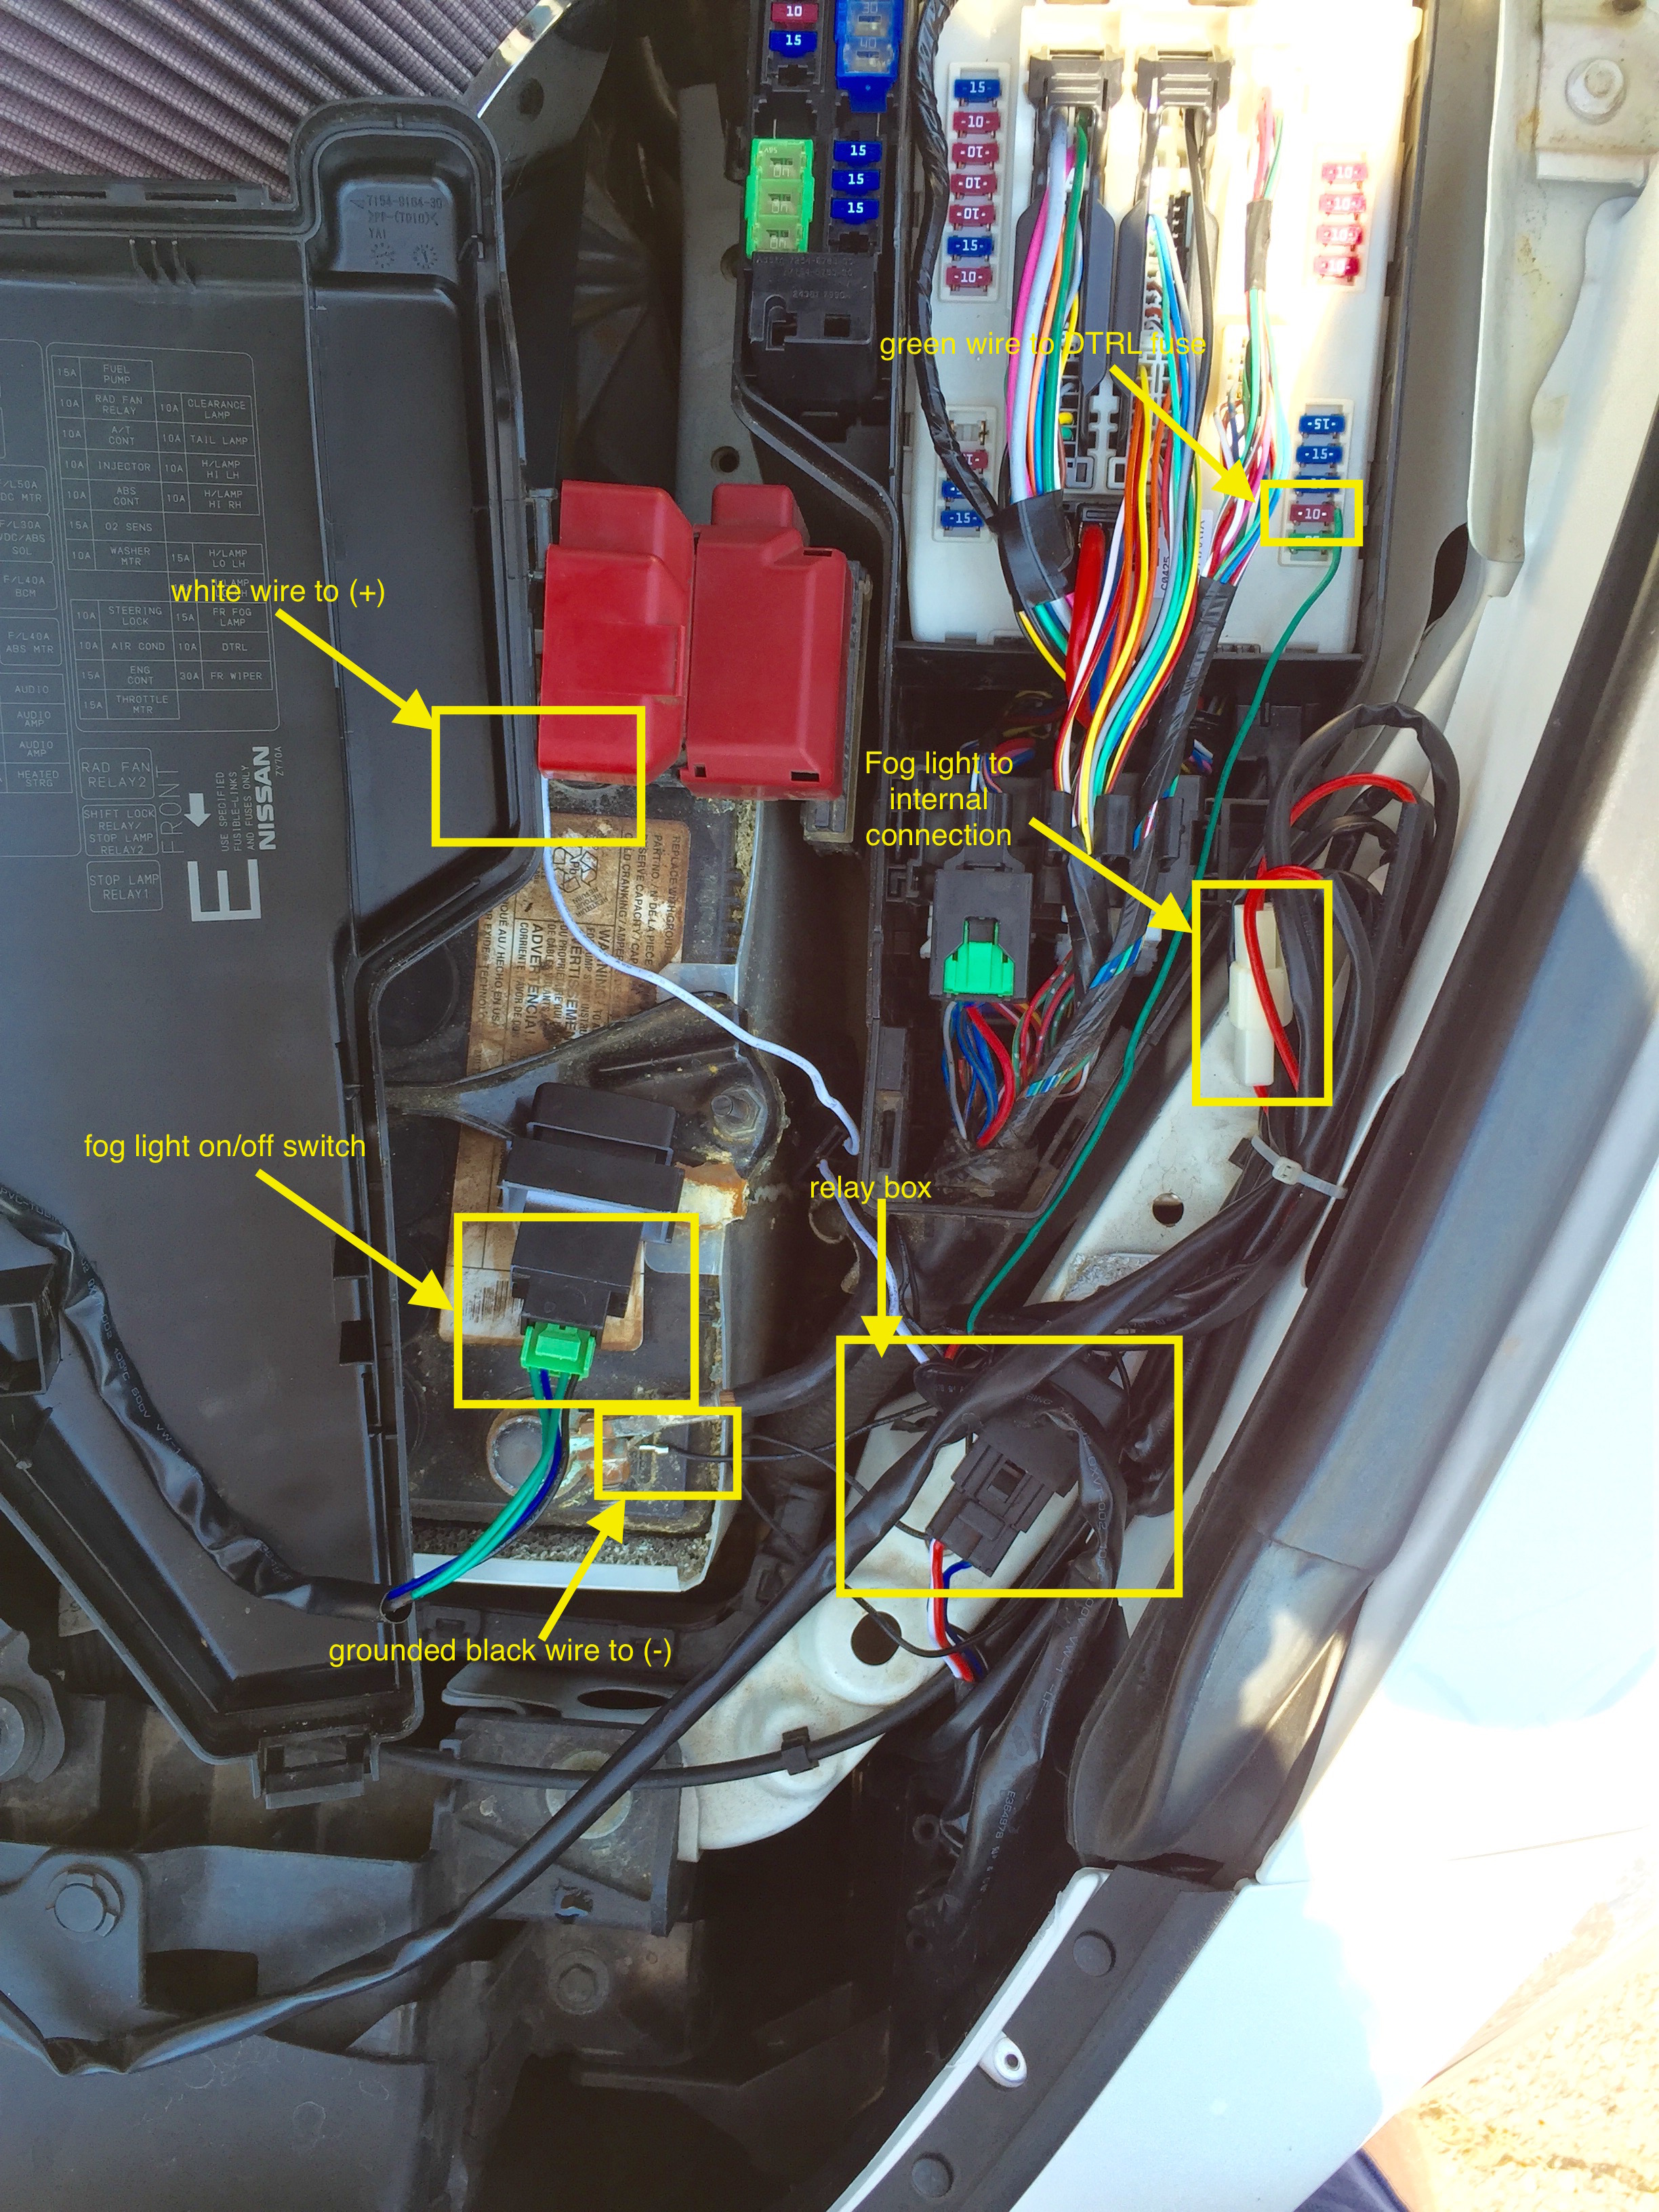 Admirable Fog Light Wiring Harness Issues Pic Included Maxima Forums Wiring Cloud Licukosporaidewilluminateatxorg